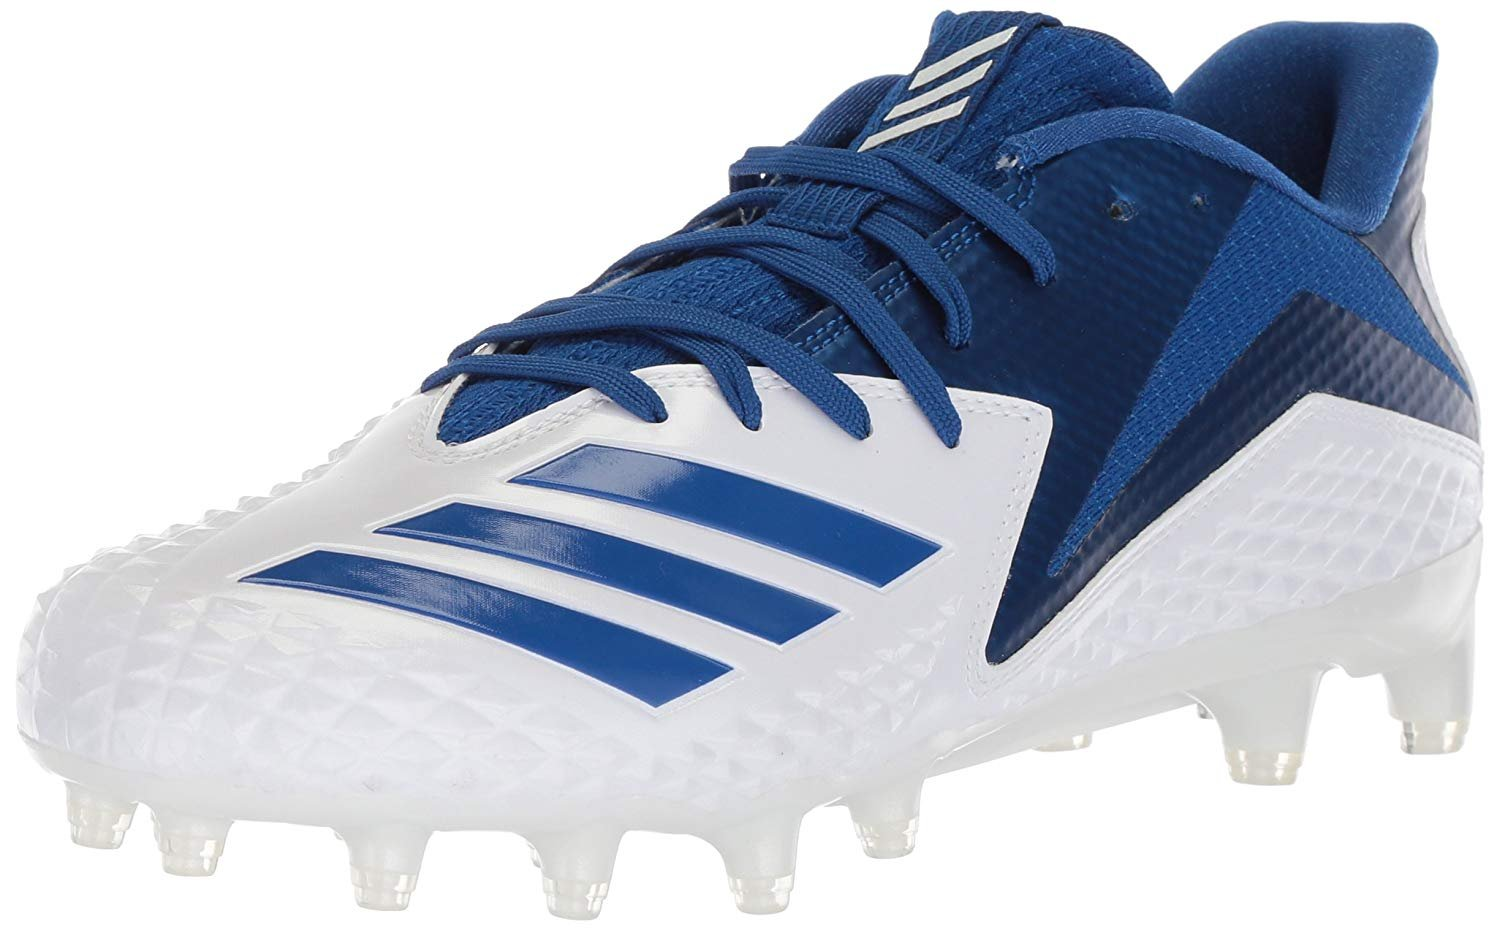 adidas Men's Freak X Carbon Mid Football Shoe, White/Collegiate Royal/Collegiate Royal, 13.5 M US by adidas